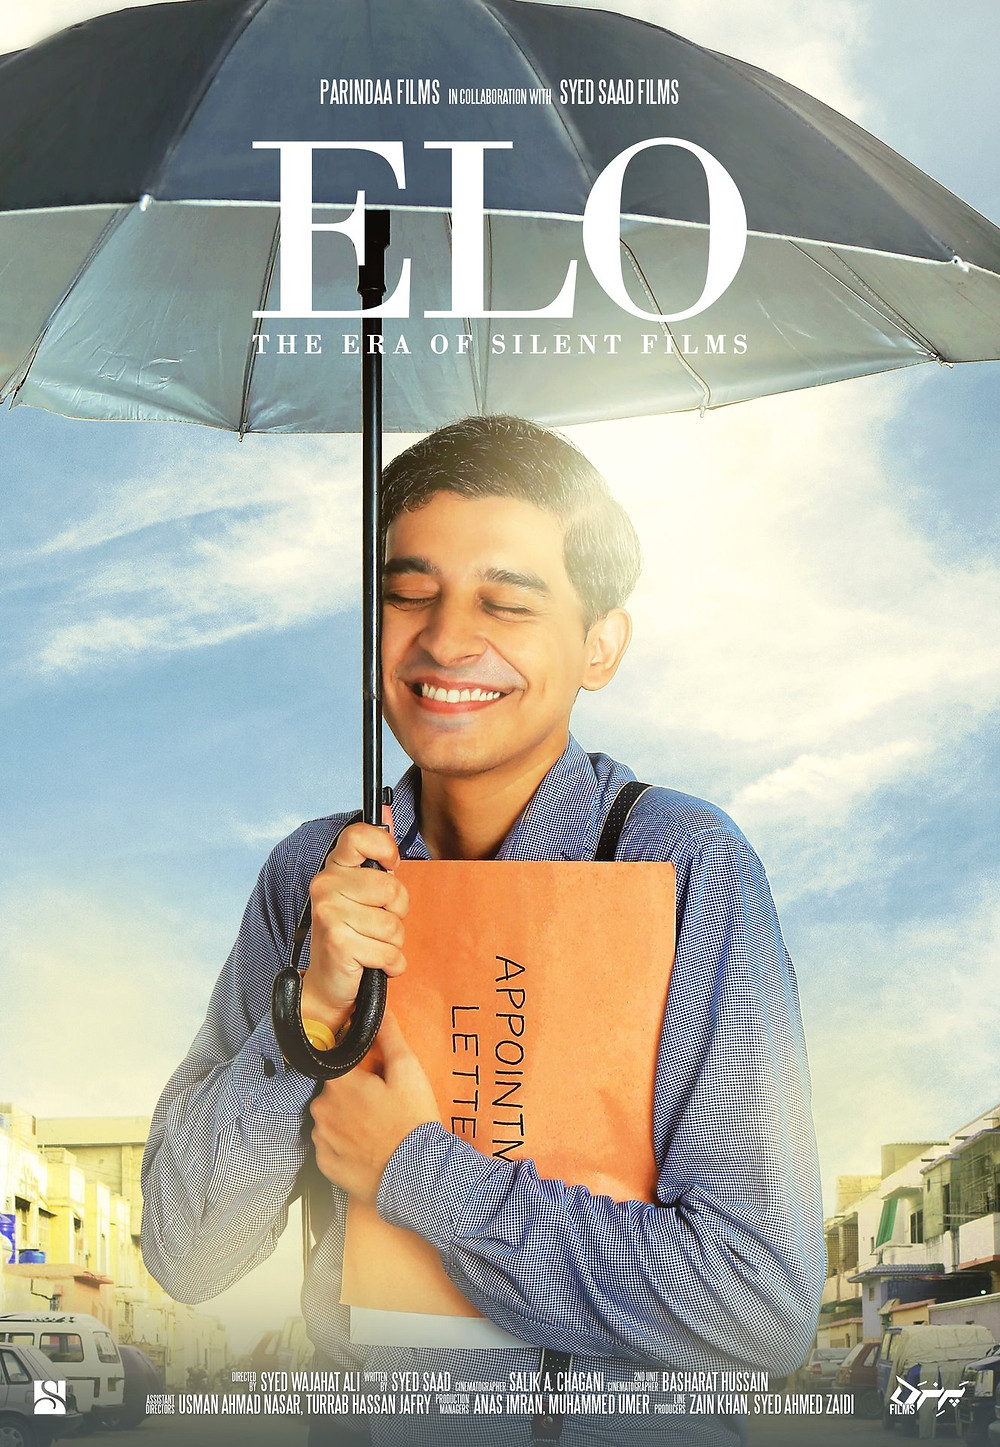 Movie Poster for Elo showing actor Syed Saad